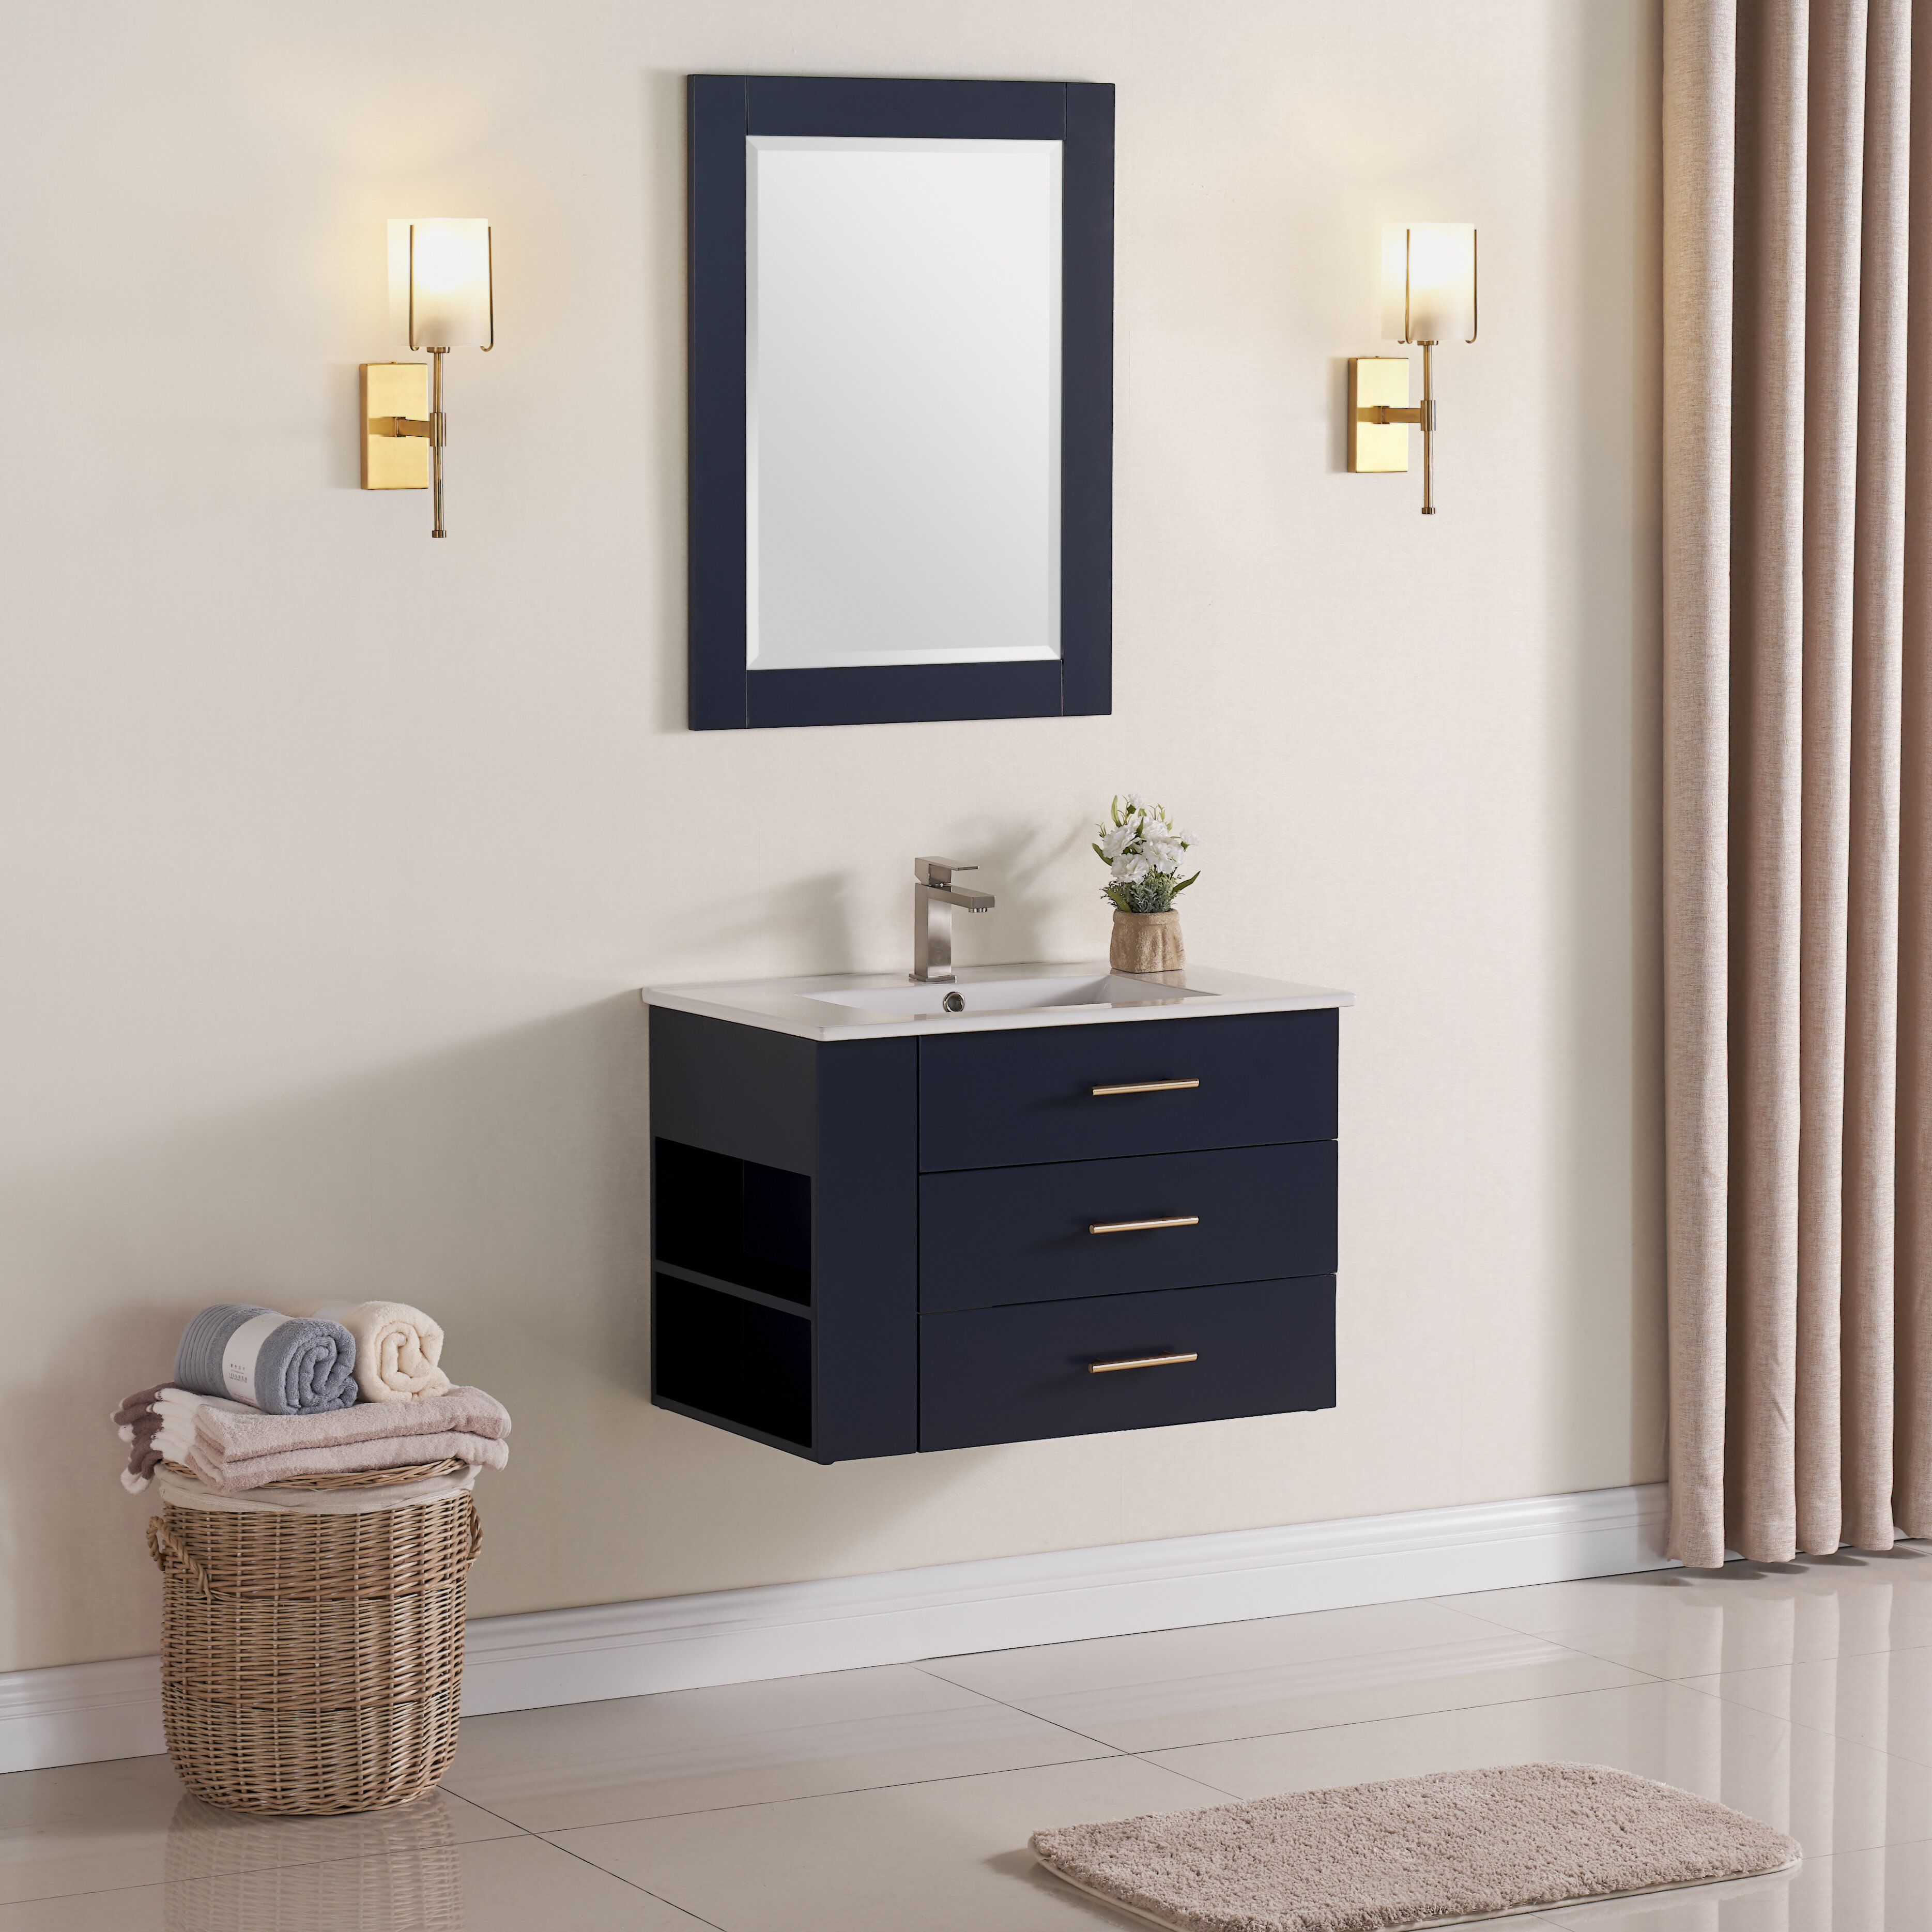 """Exquisite Home 12"""" Wall-Mounted Single Bathroom Vanity Set with Mirror"""